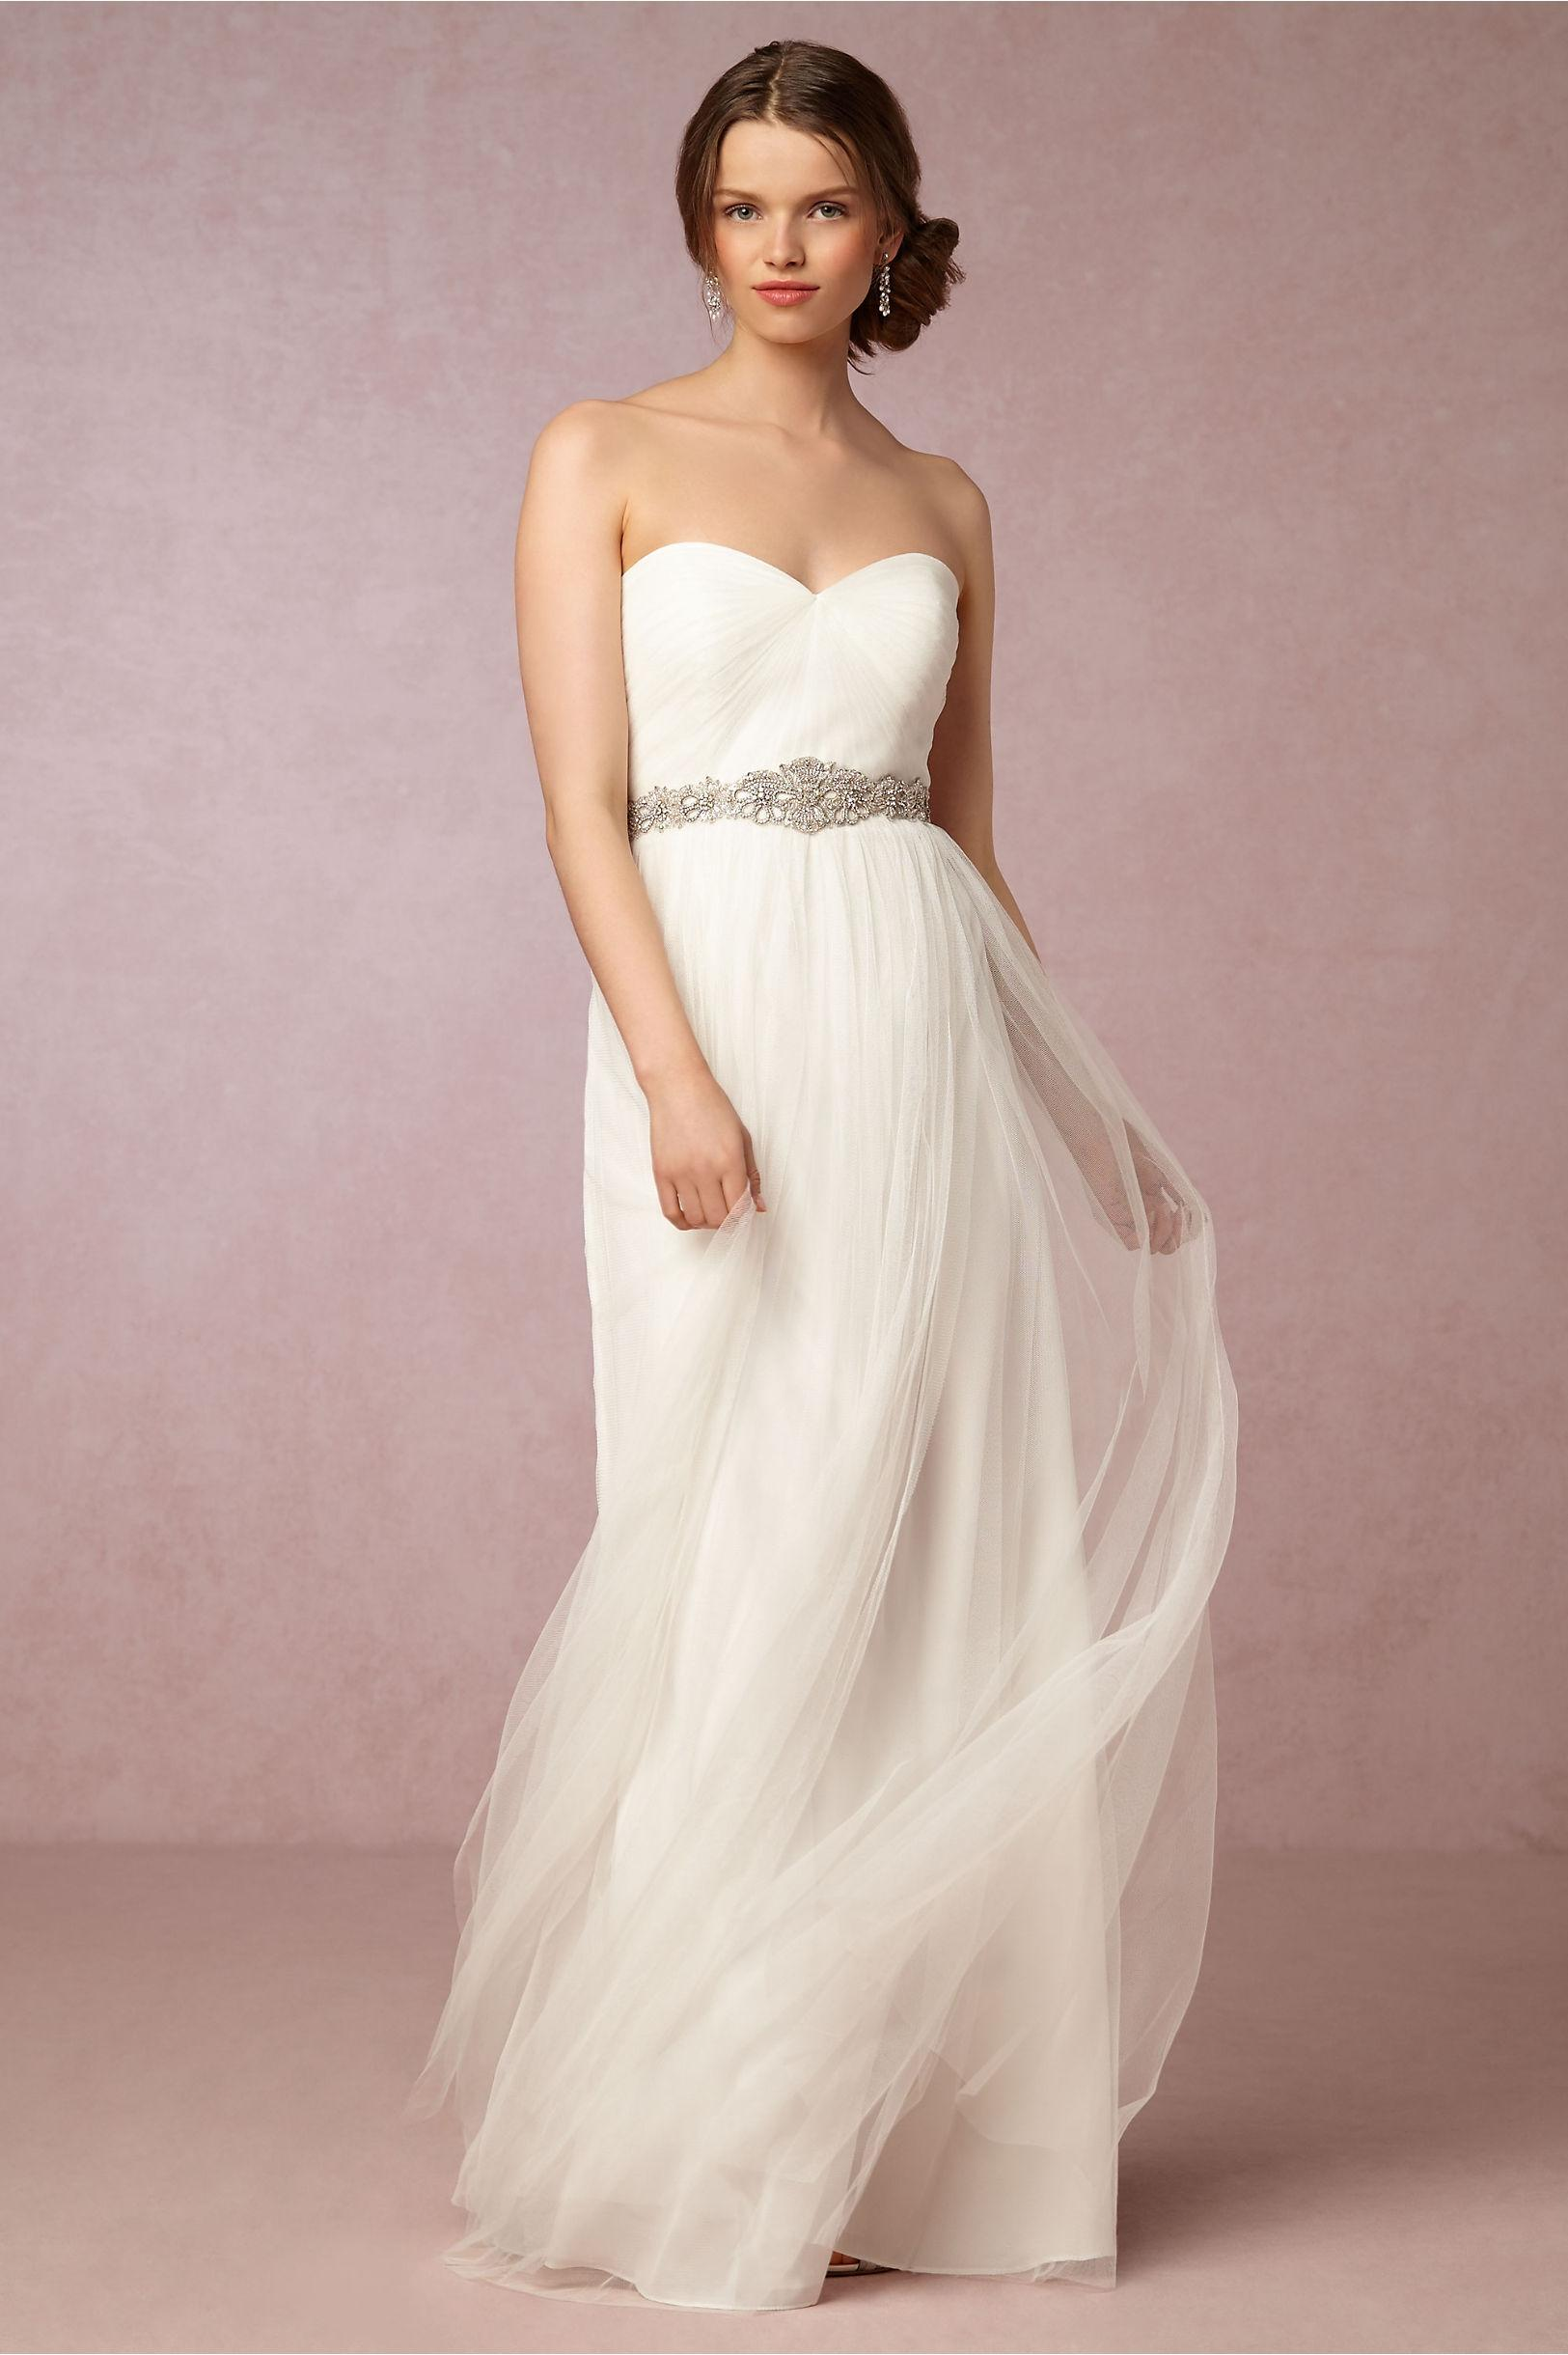 Jenny Yoo White Polyester Anthropologie Annabelle Casual Wedding Dress Size  14 (L) ...